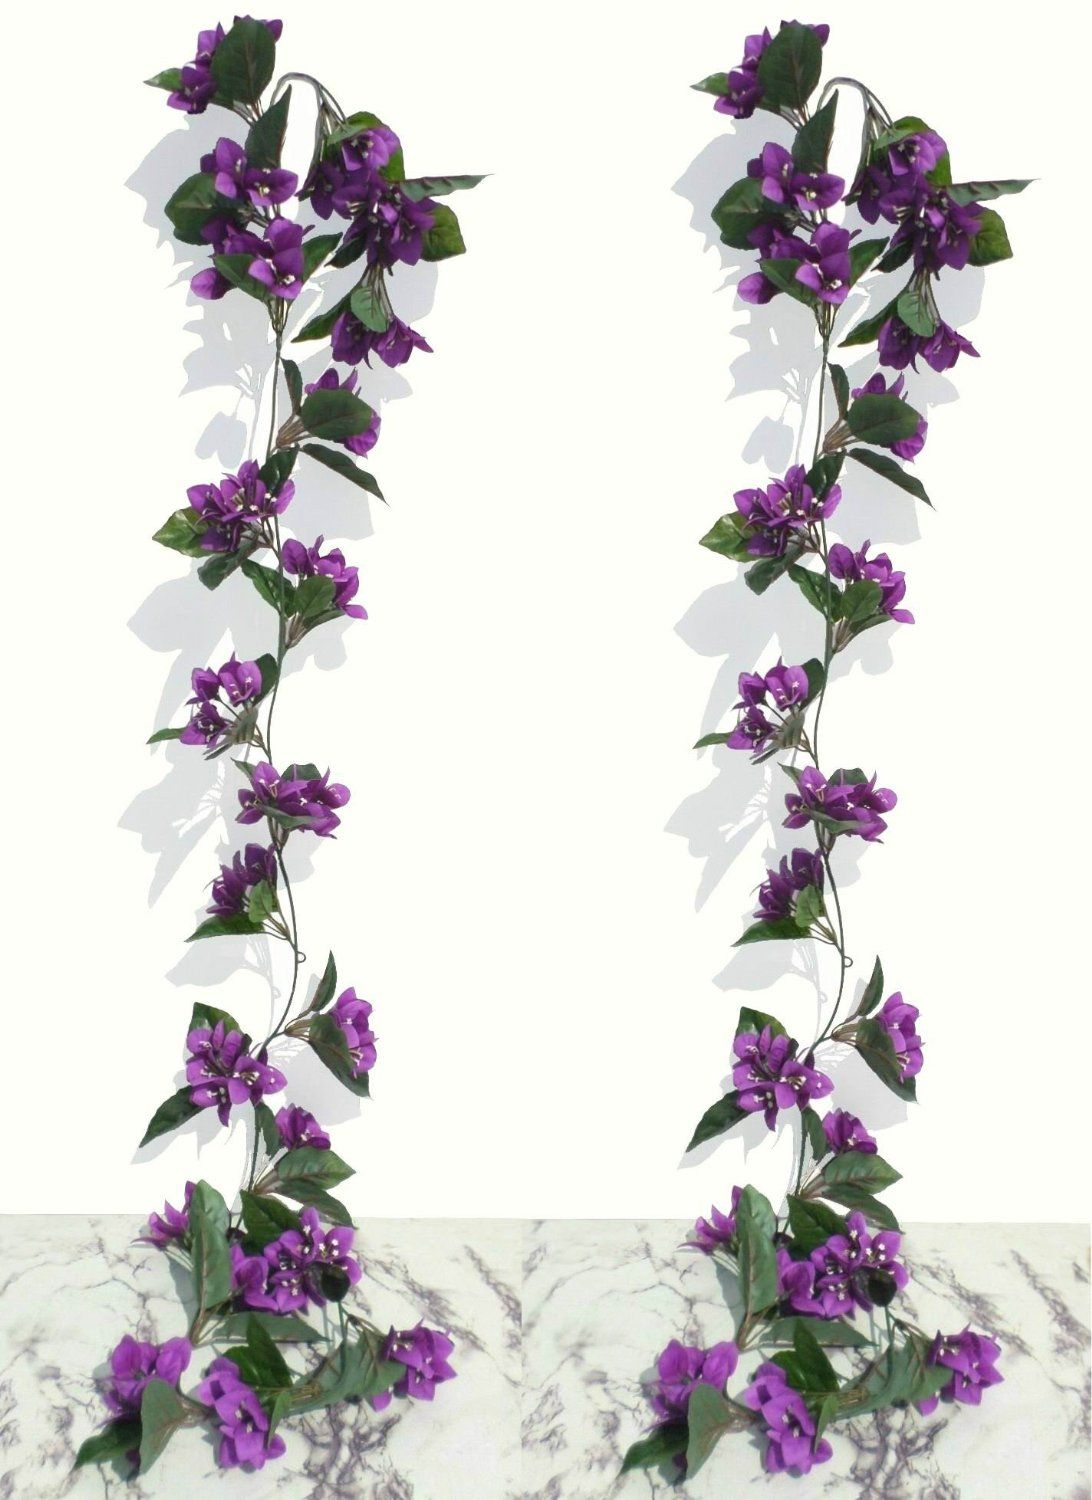 Artificial plants for kitchen - 2 X 6ft Bougainvillea Garlands Artificial Plants Amazon Co Uk Kitchen